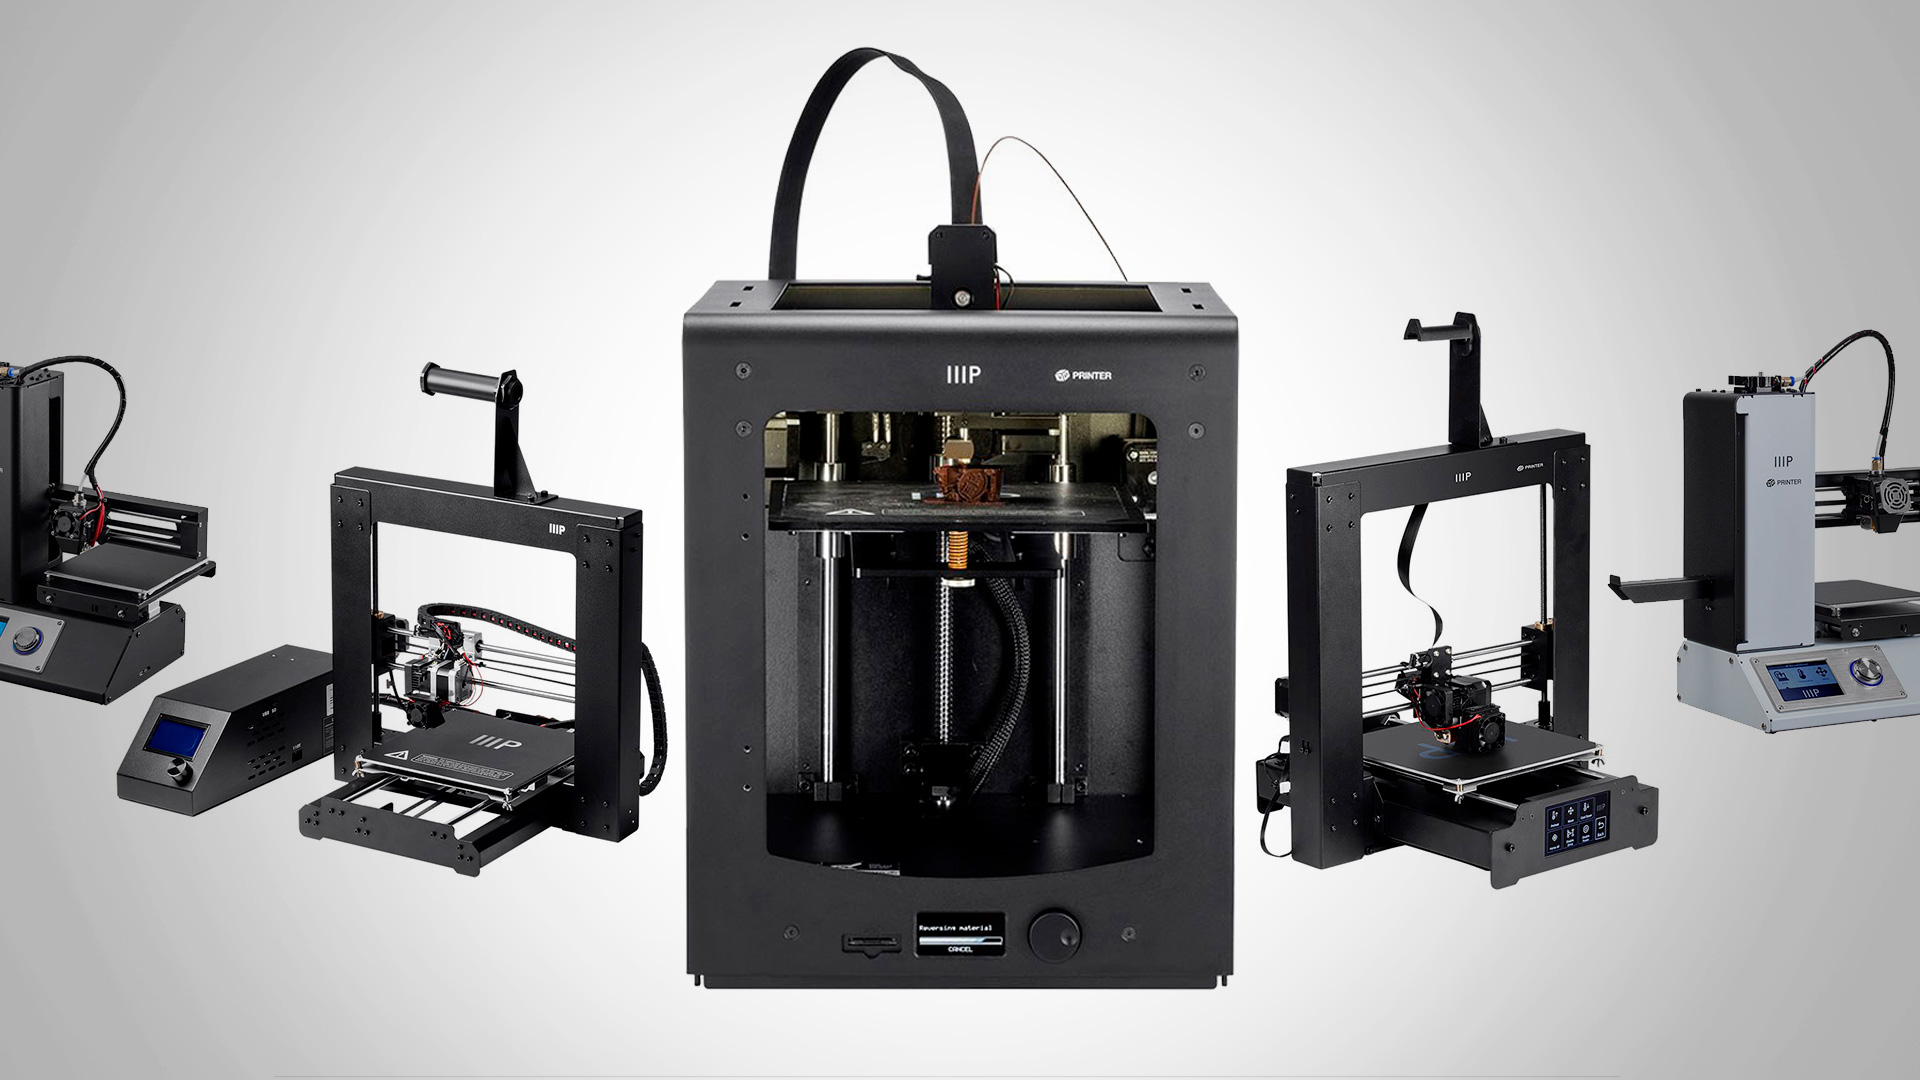 [DEAL] Up to $200 Off Monoprice 3D Printers | All3DP